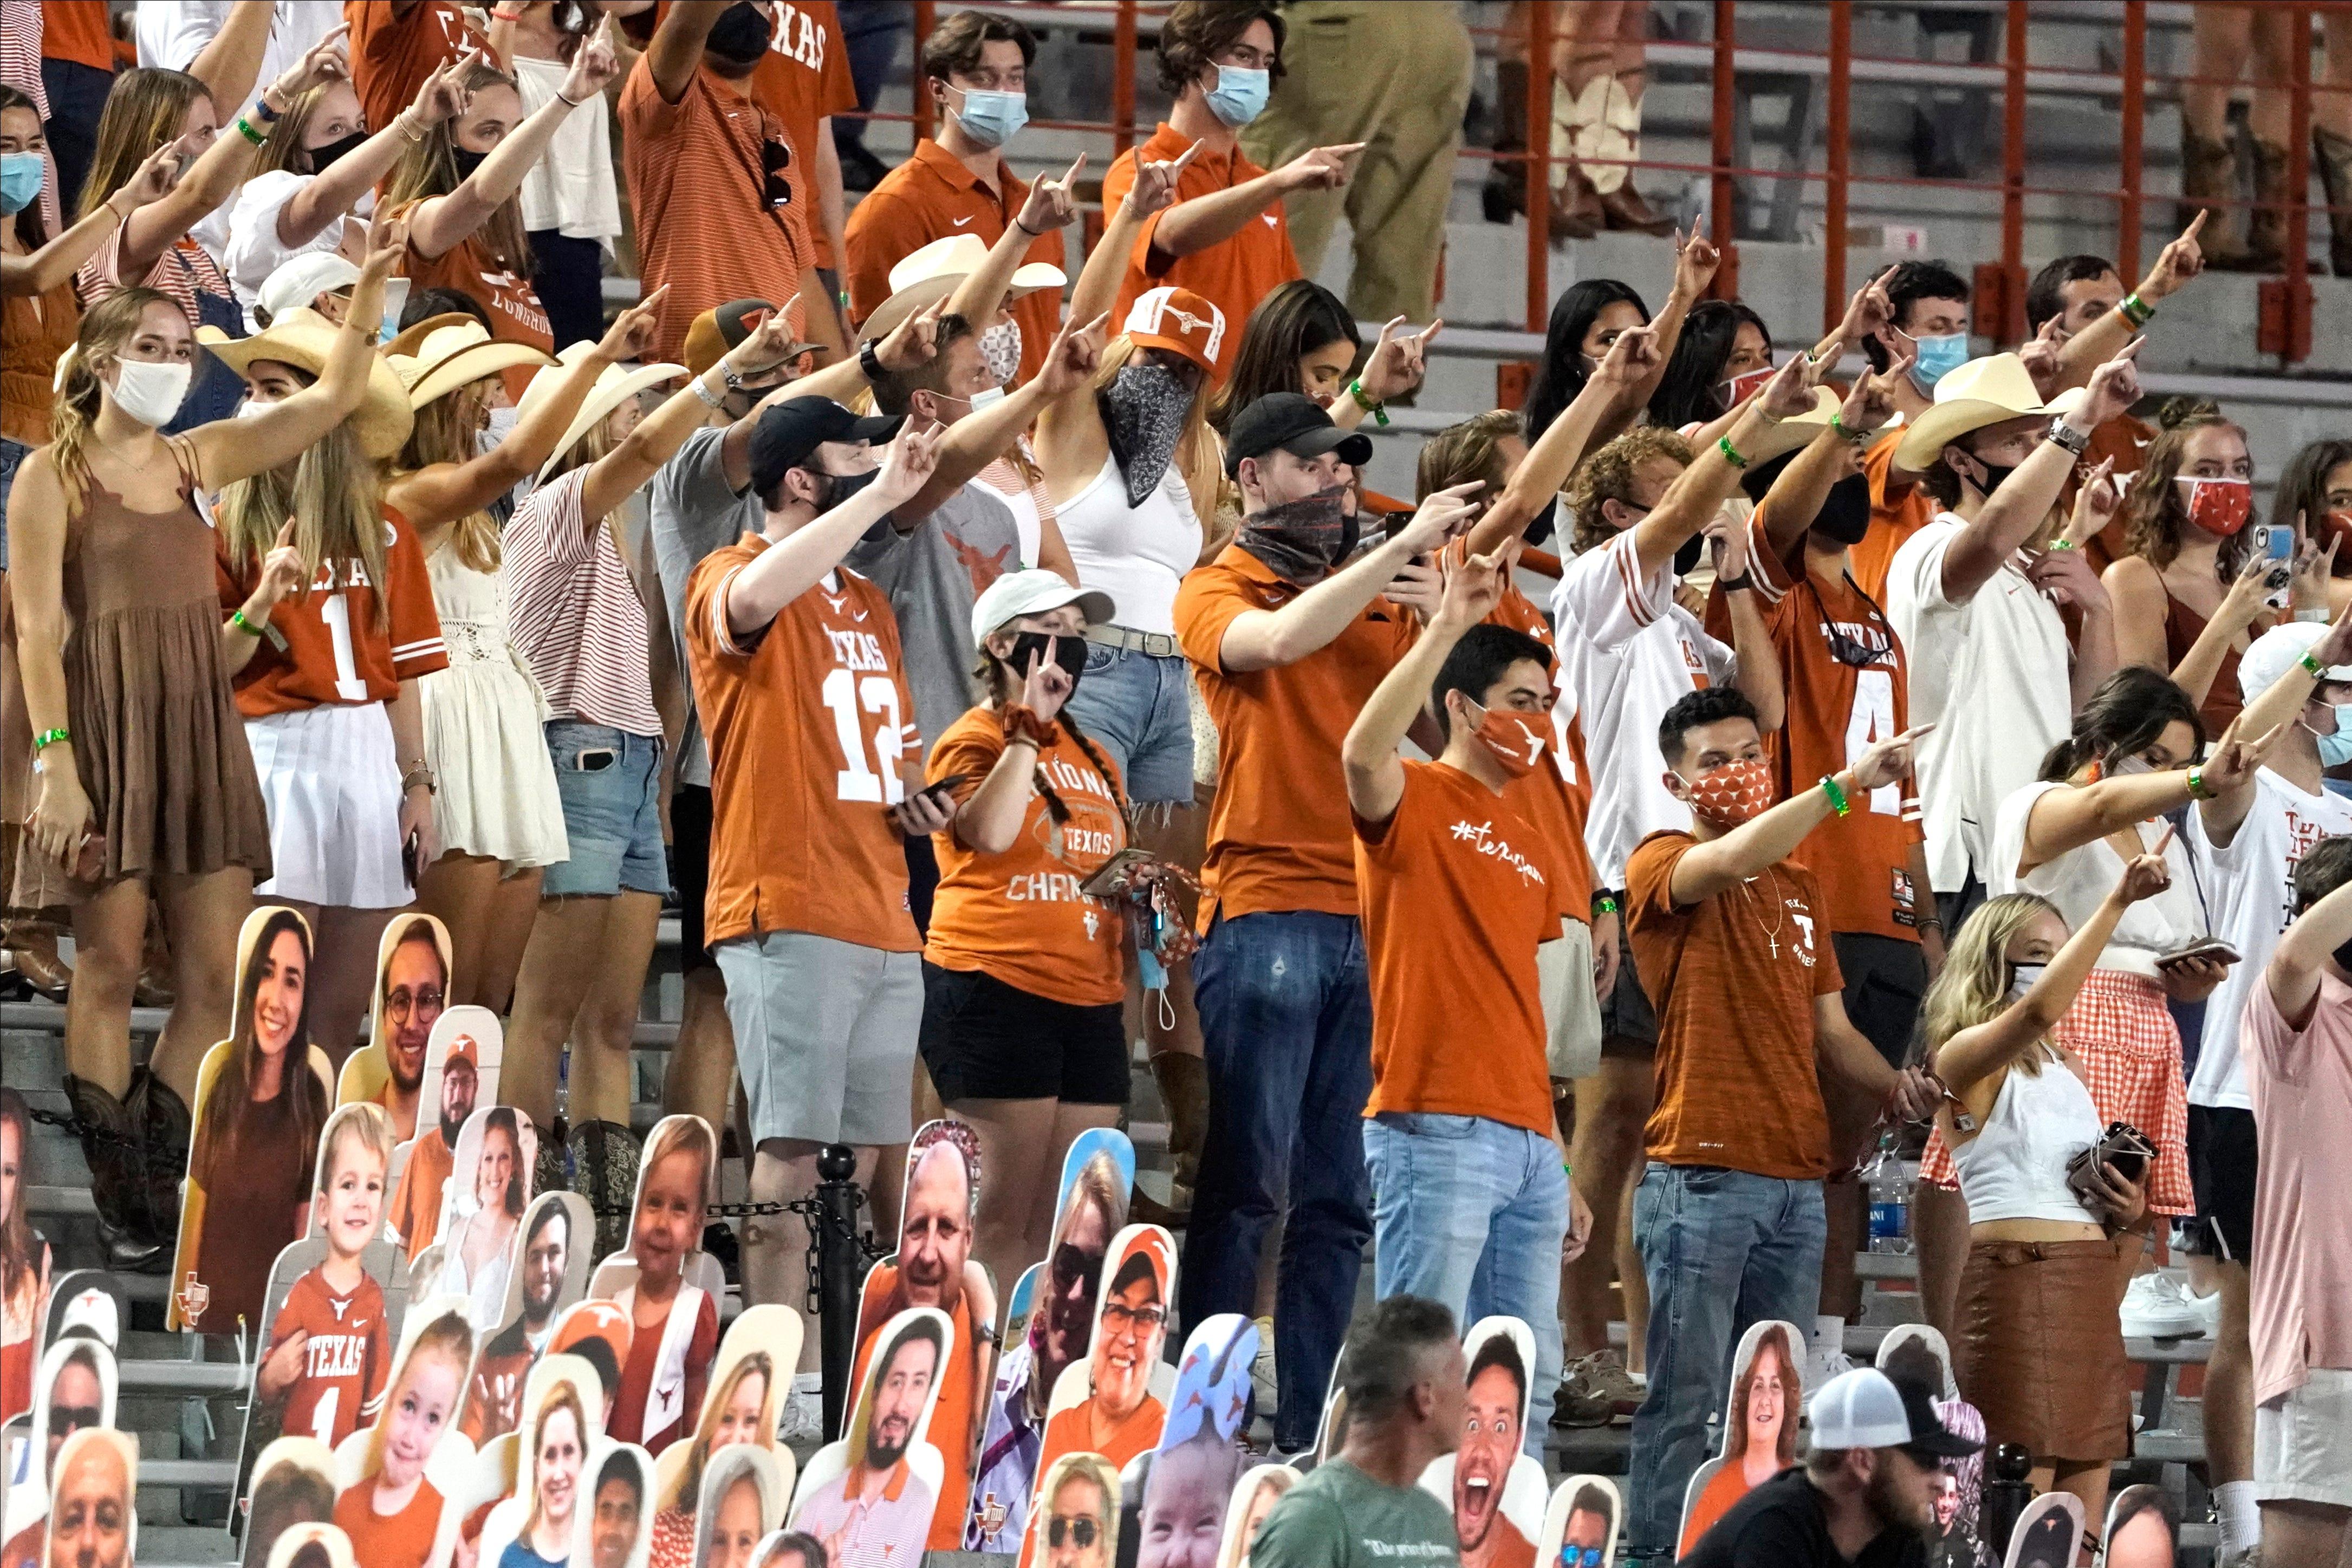 Opinion: Longhorns leaders shouldn't wait any longer to drop 'The Eyes of Texas'